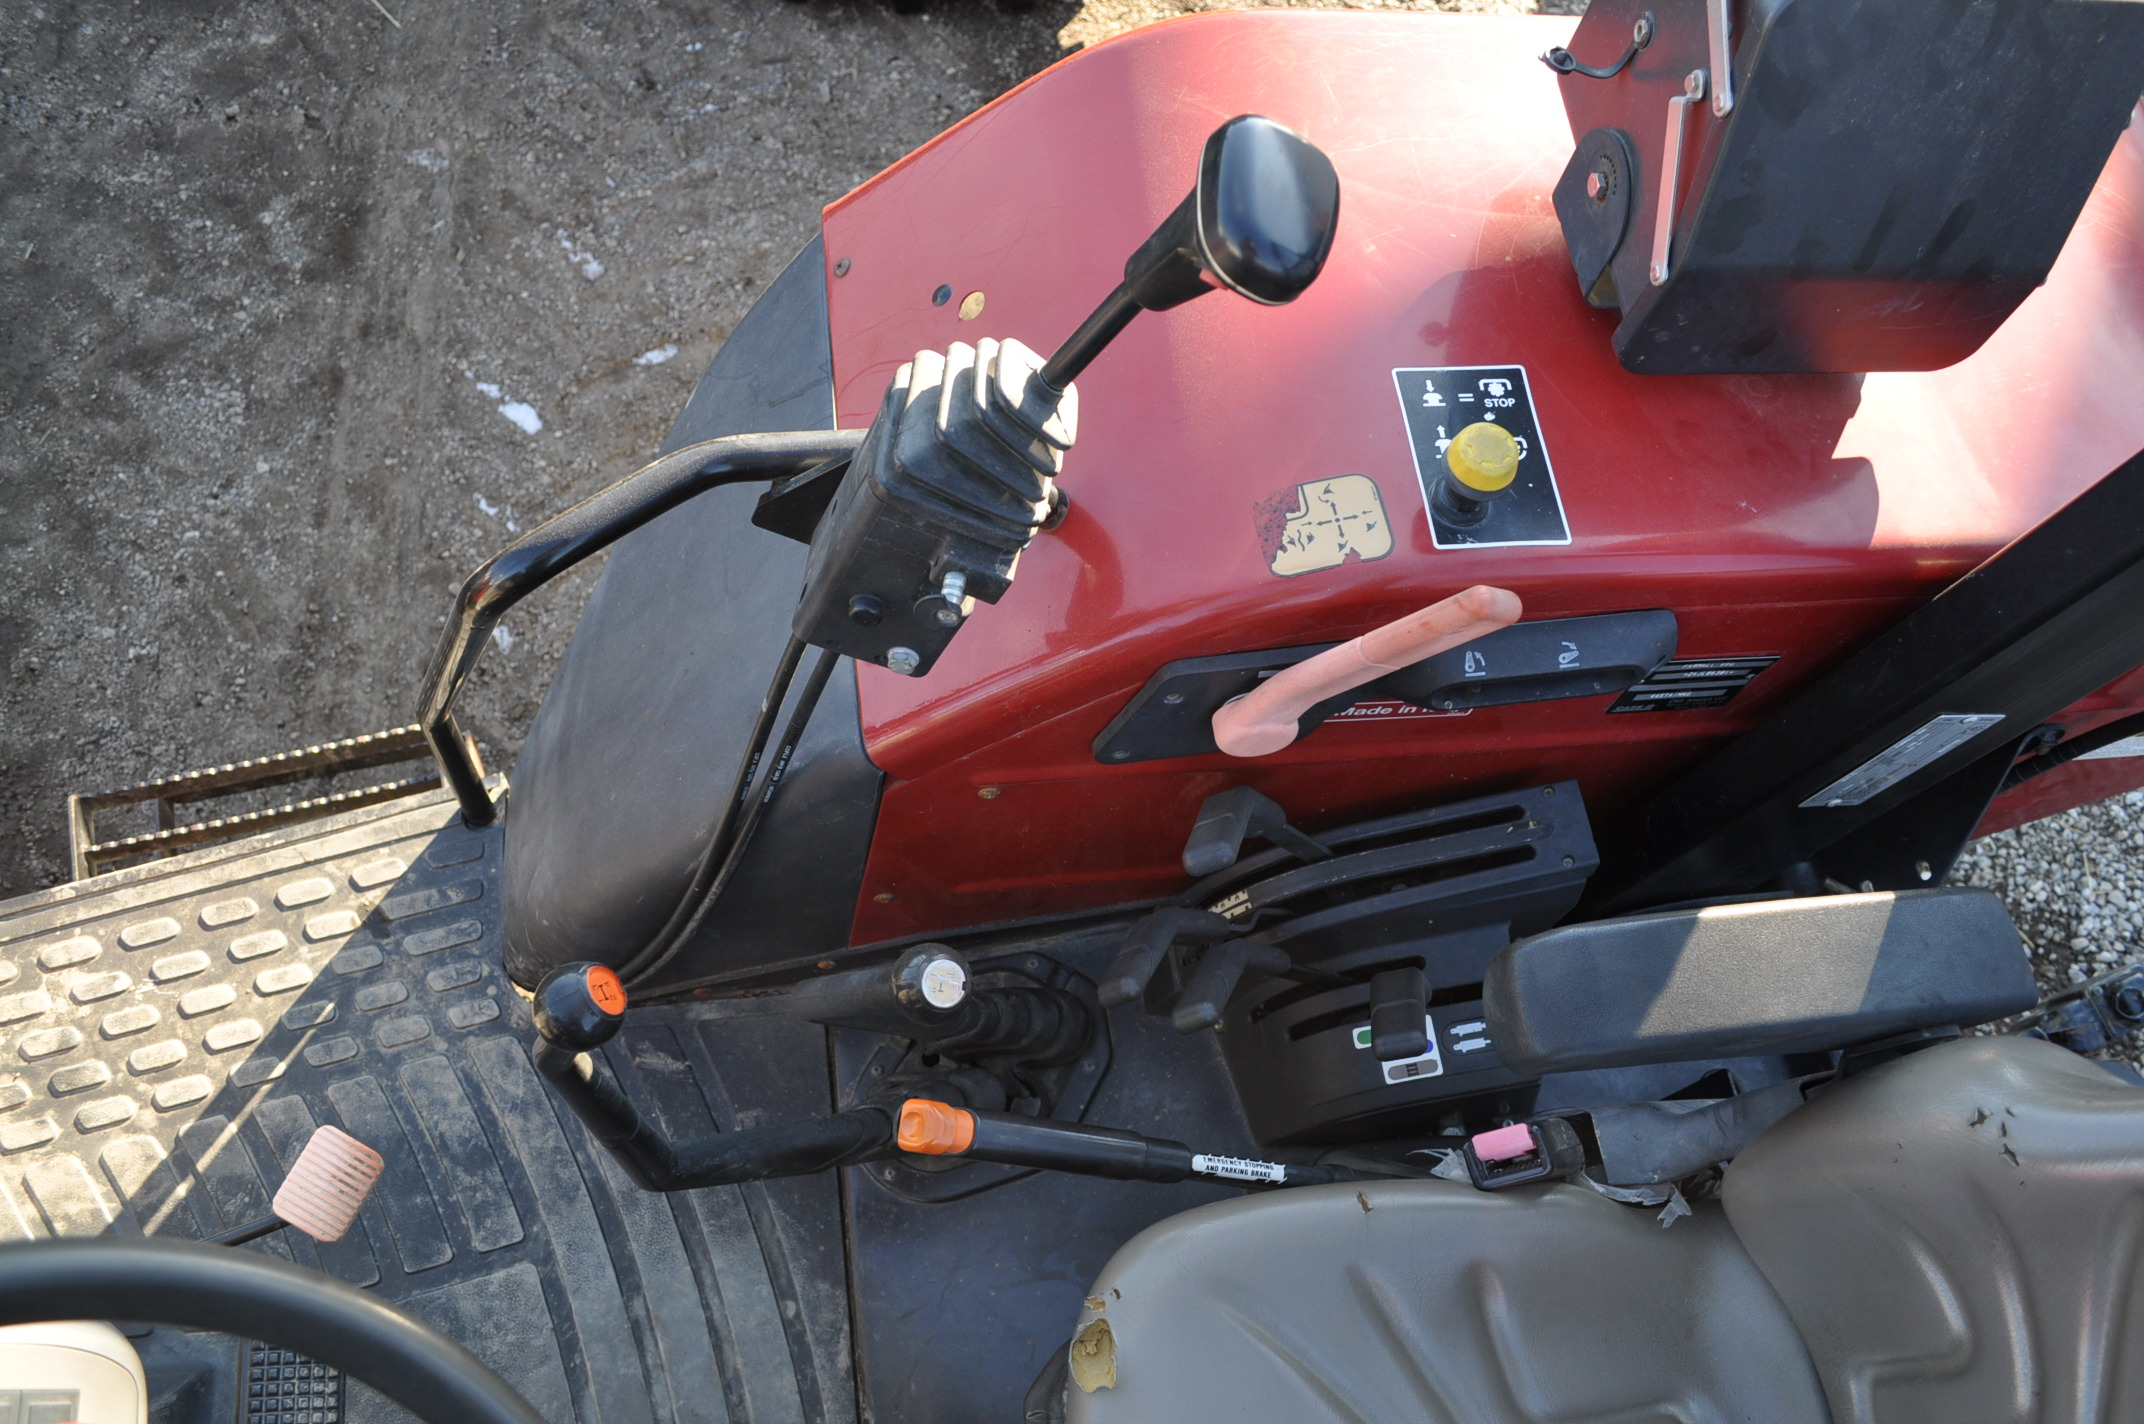 Case IH 85U Farmall MFWD tractor, 18.4R30 rear, 12.4R24 front, open station, mechanical shuttle - Image 14 of 16